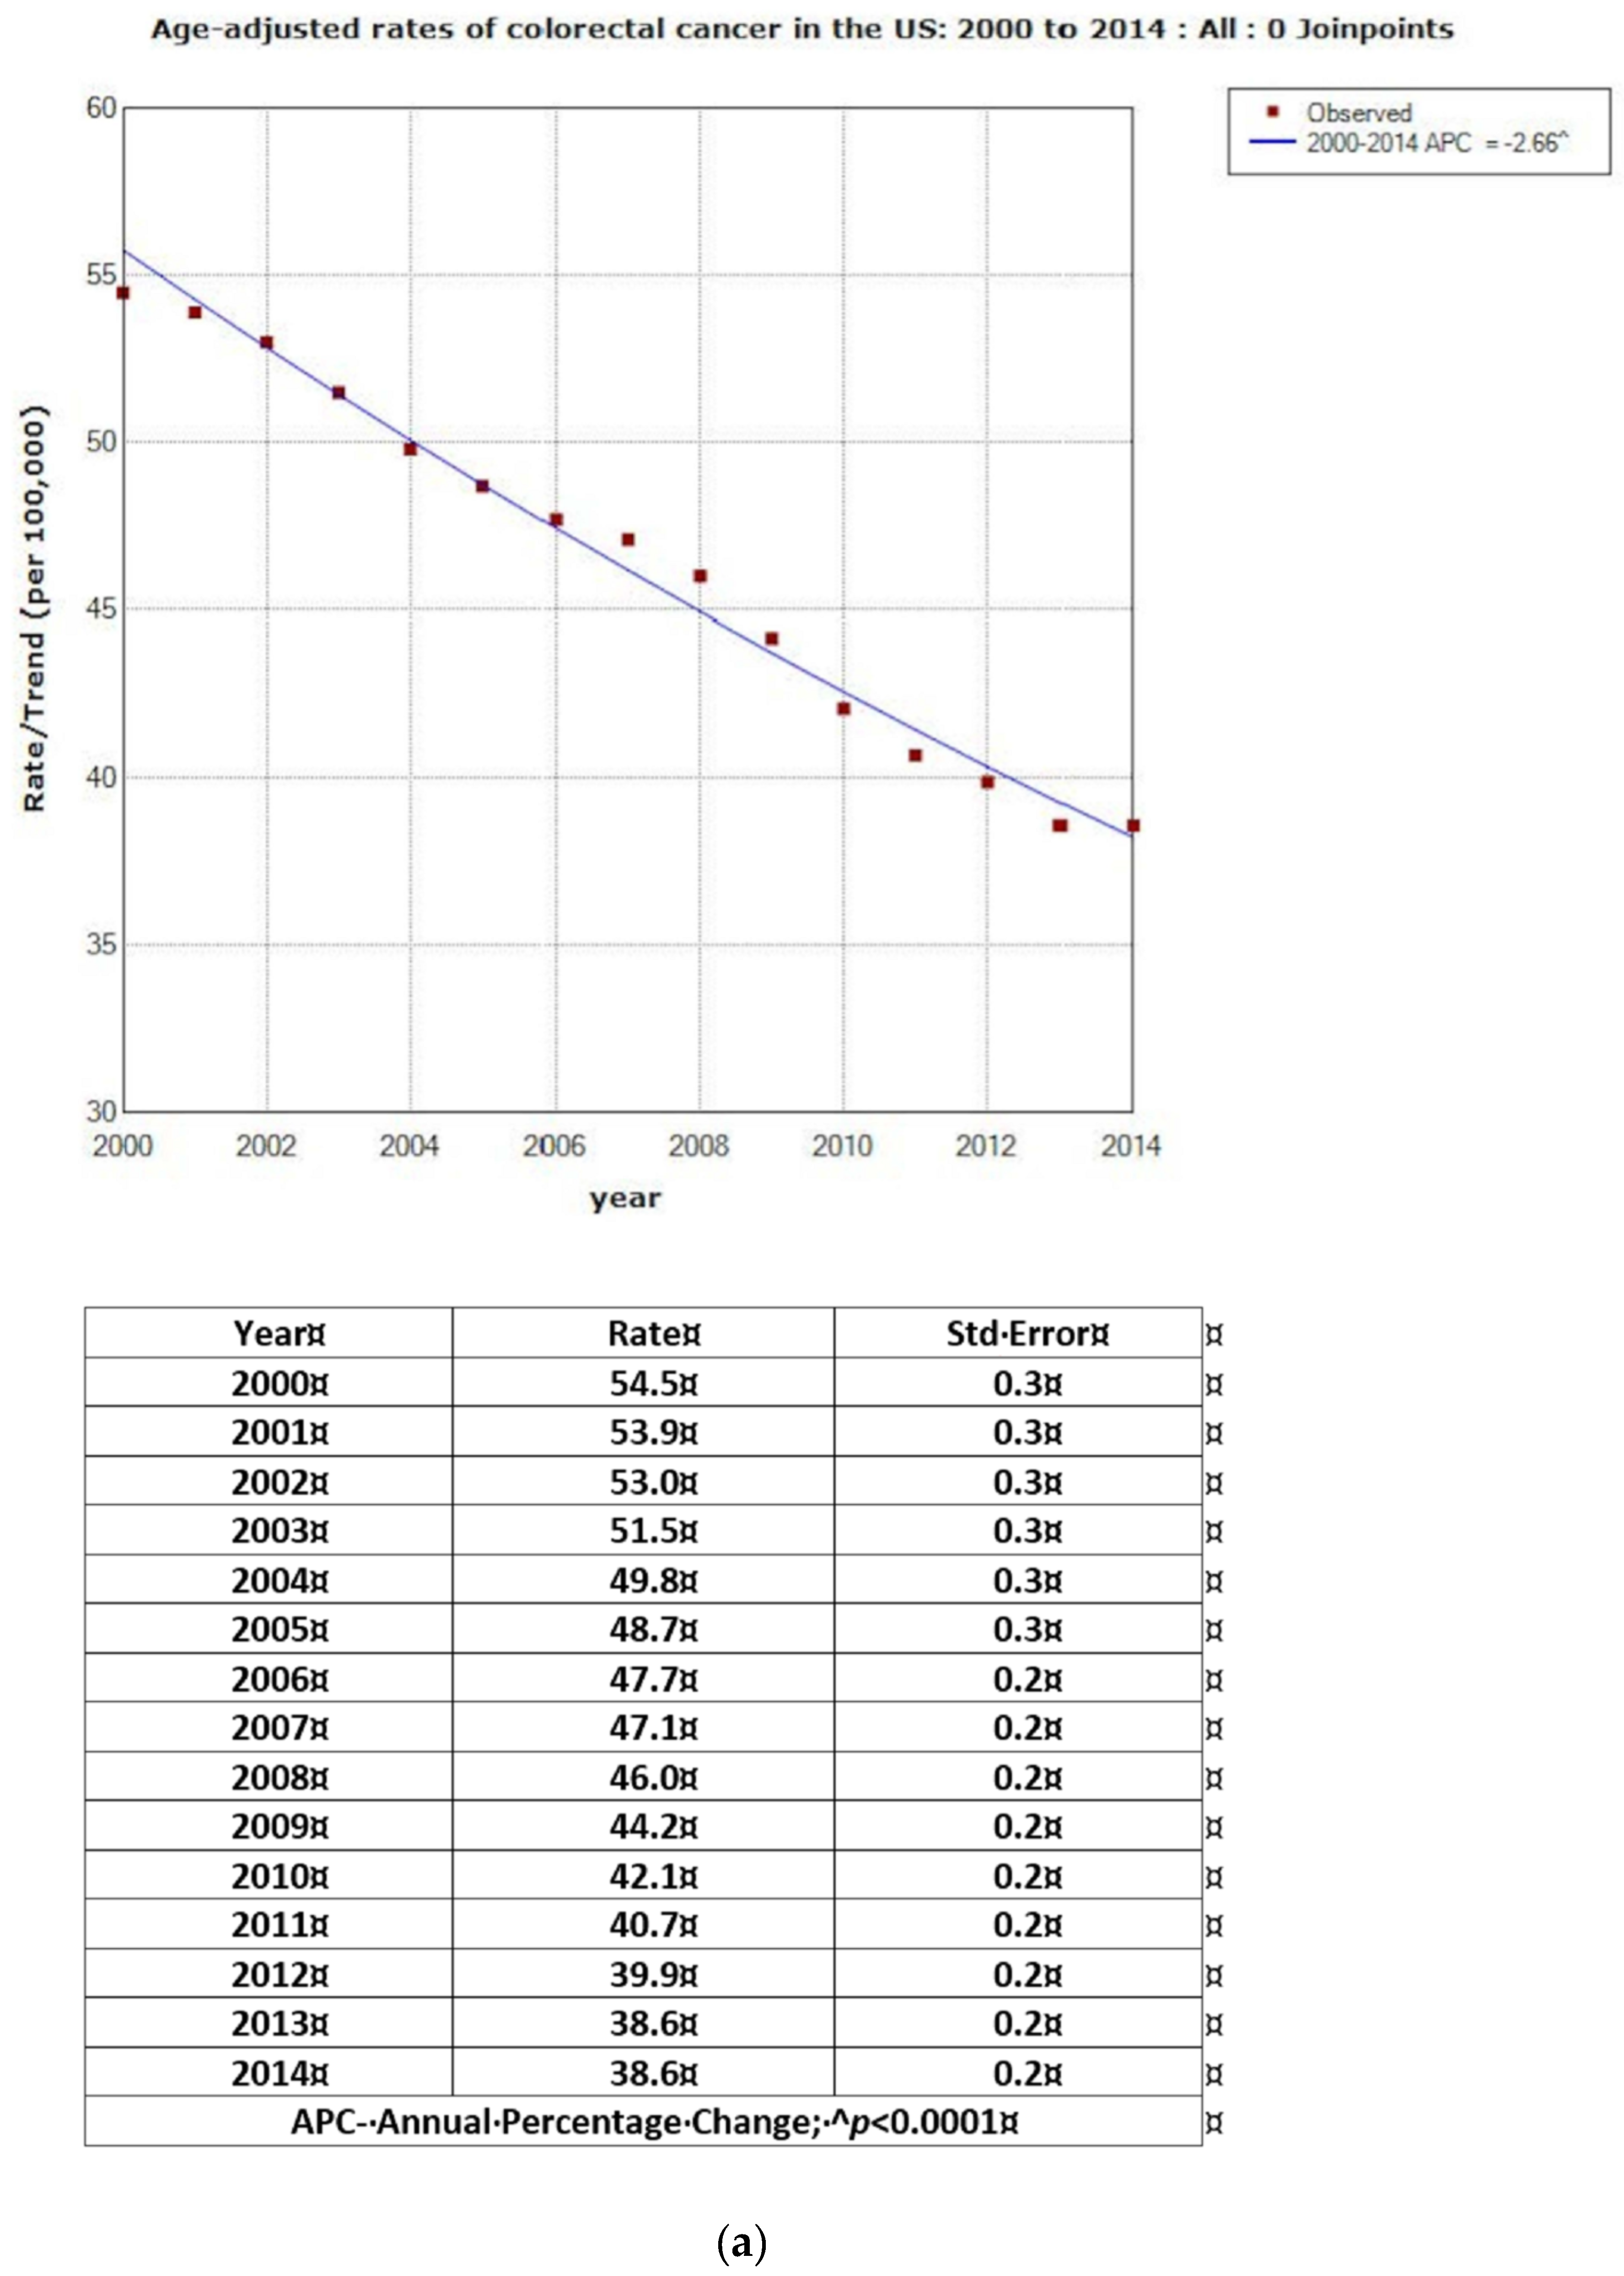 Jcm Free Full Text Evaluation Of Colorectal Cancer Incidence Trends In The United States 2000 2014 Html